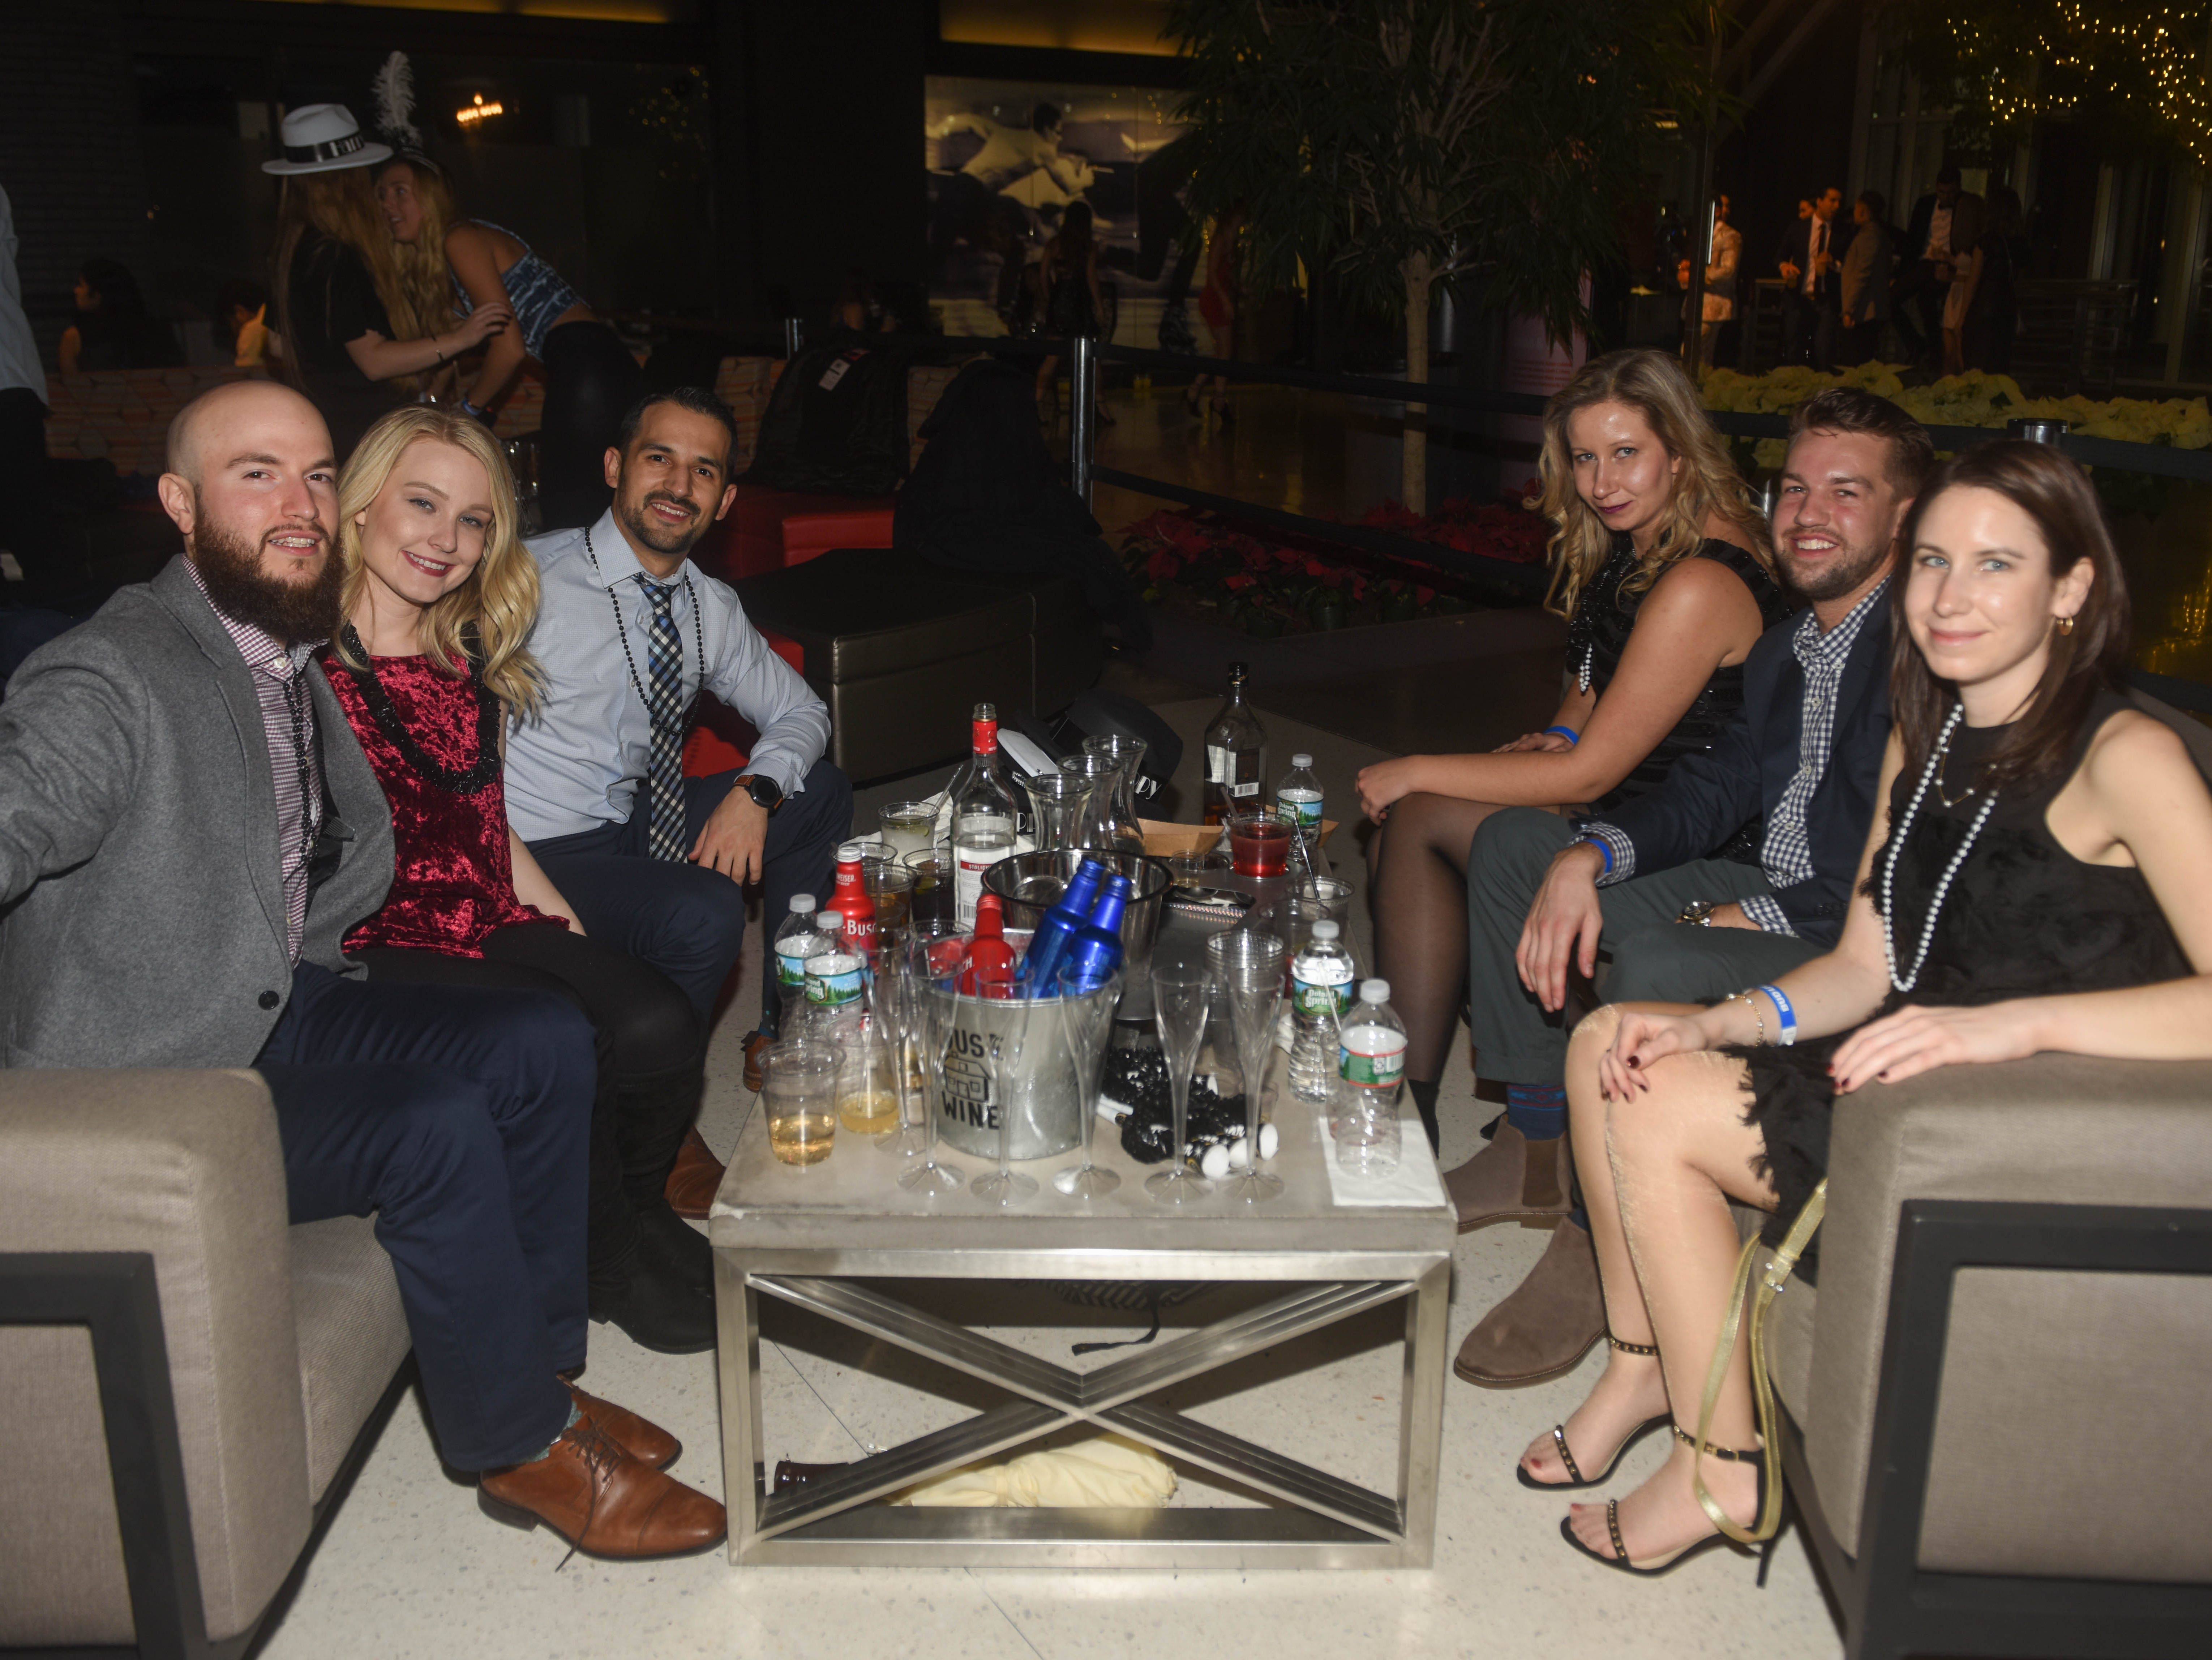 Harborside Atrium in Jersey City held their Lutze New Years Eve Bash to bring in 2019. 12/31/2018